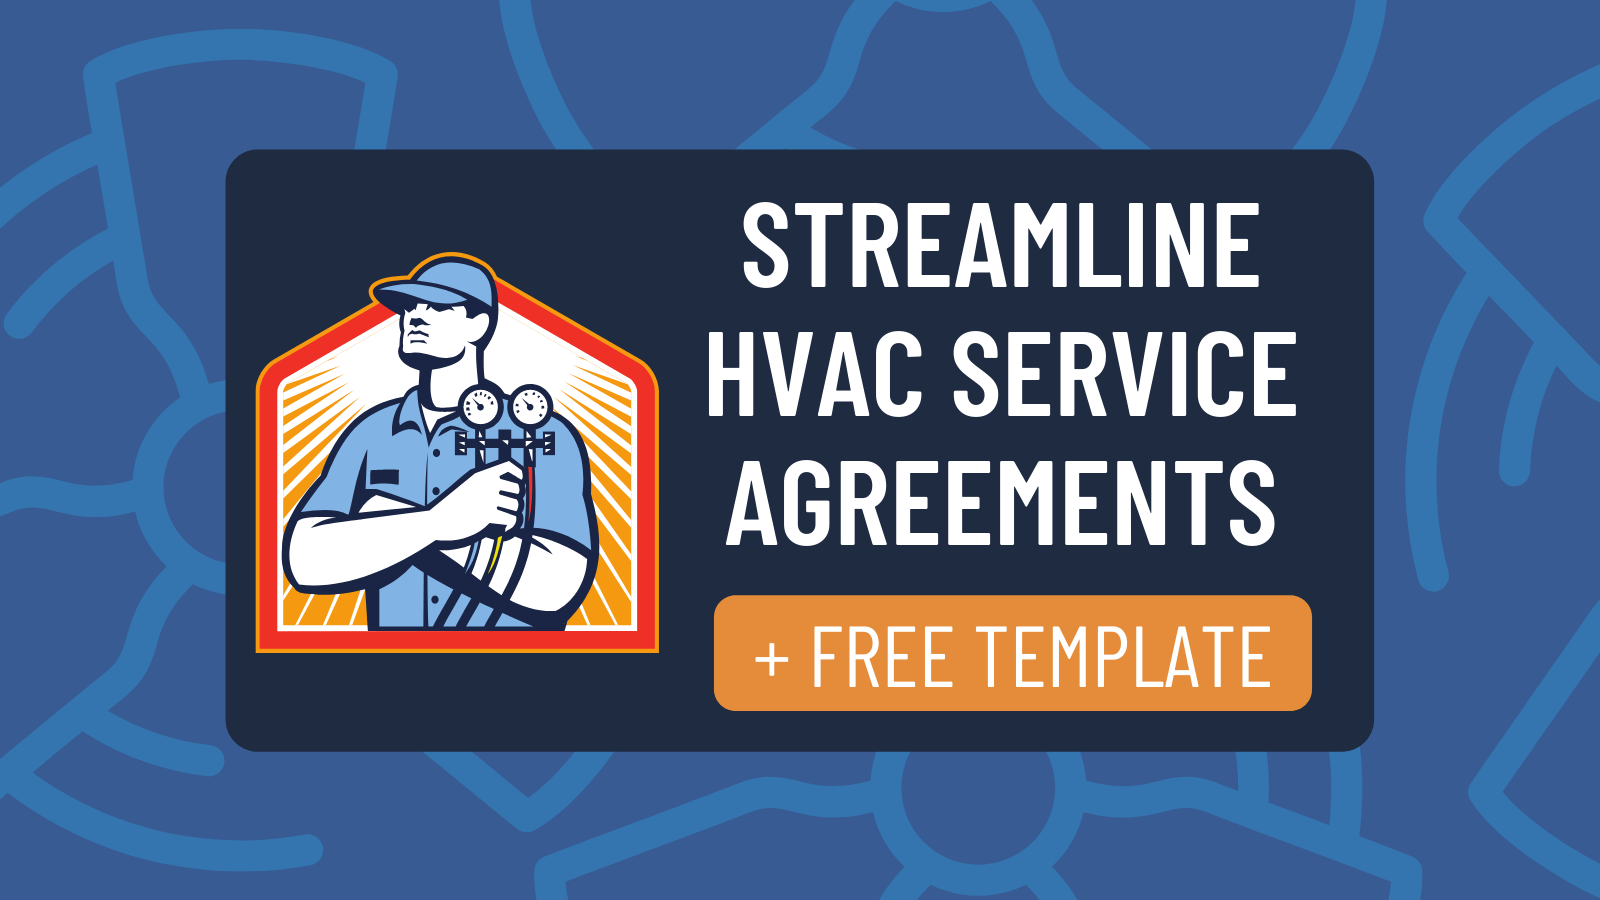 How to Streamline HVAC Service Agreements (With Free Template)